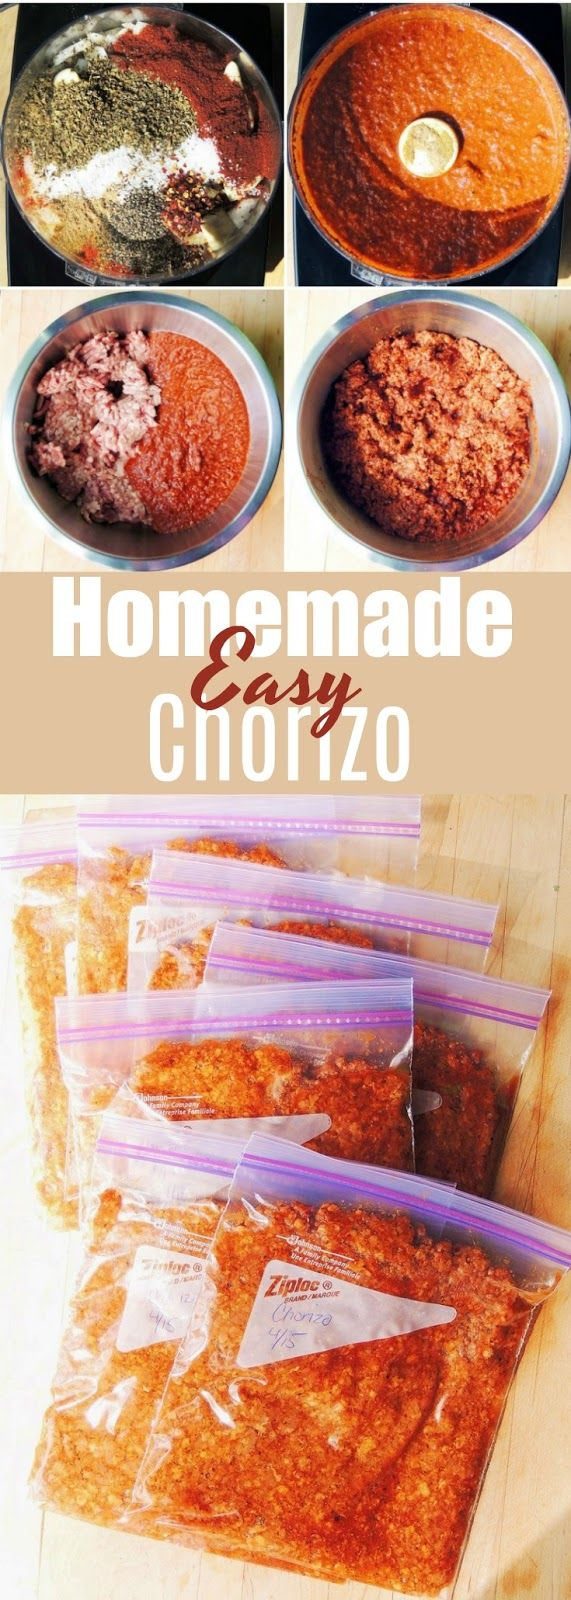 Easy Homemade Chorizo - Authentic tasting homemade chorizo is simple to make, ad much healthier than the commercially prepared kind! |